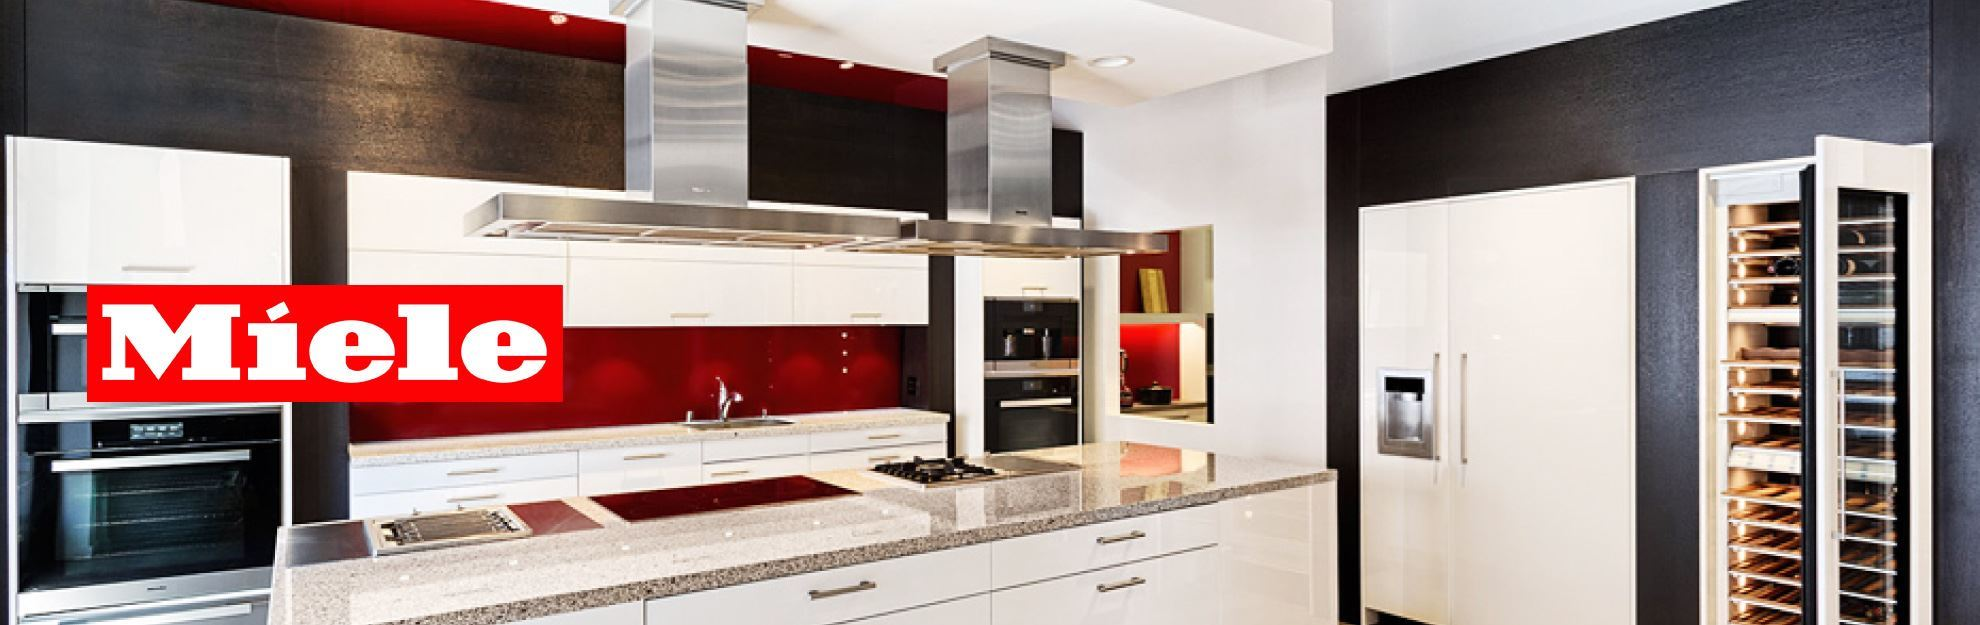 Picture for manufacturer Miele